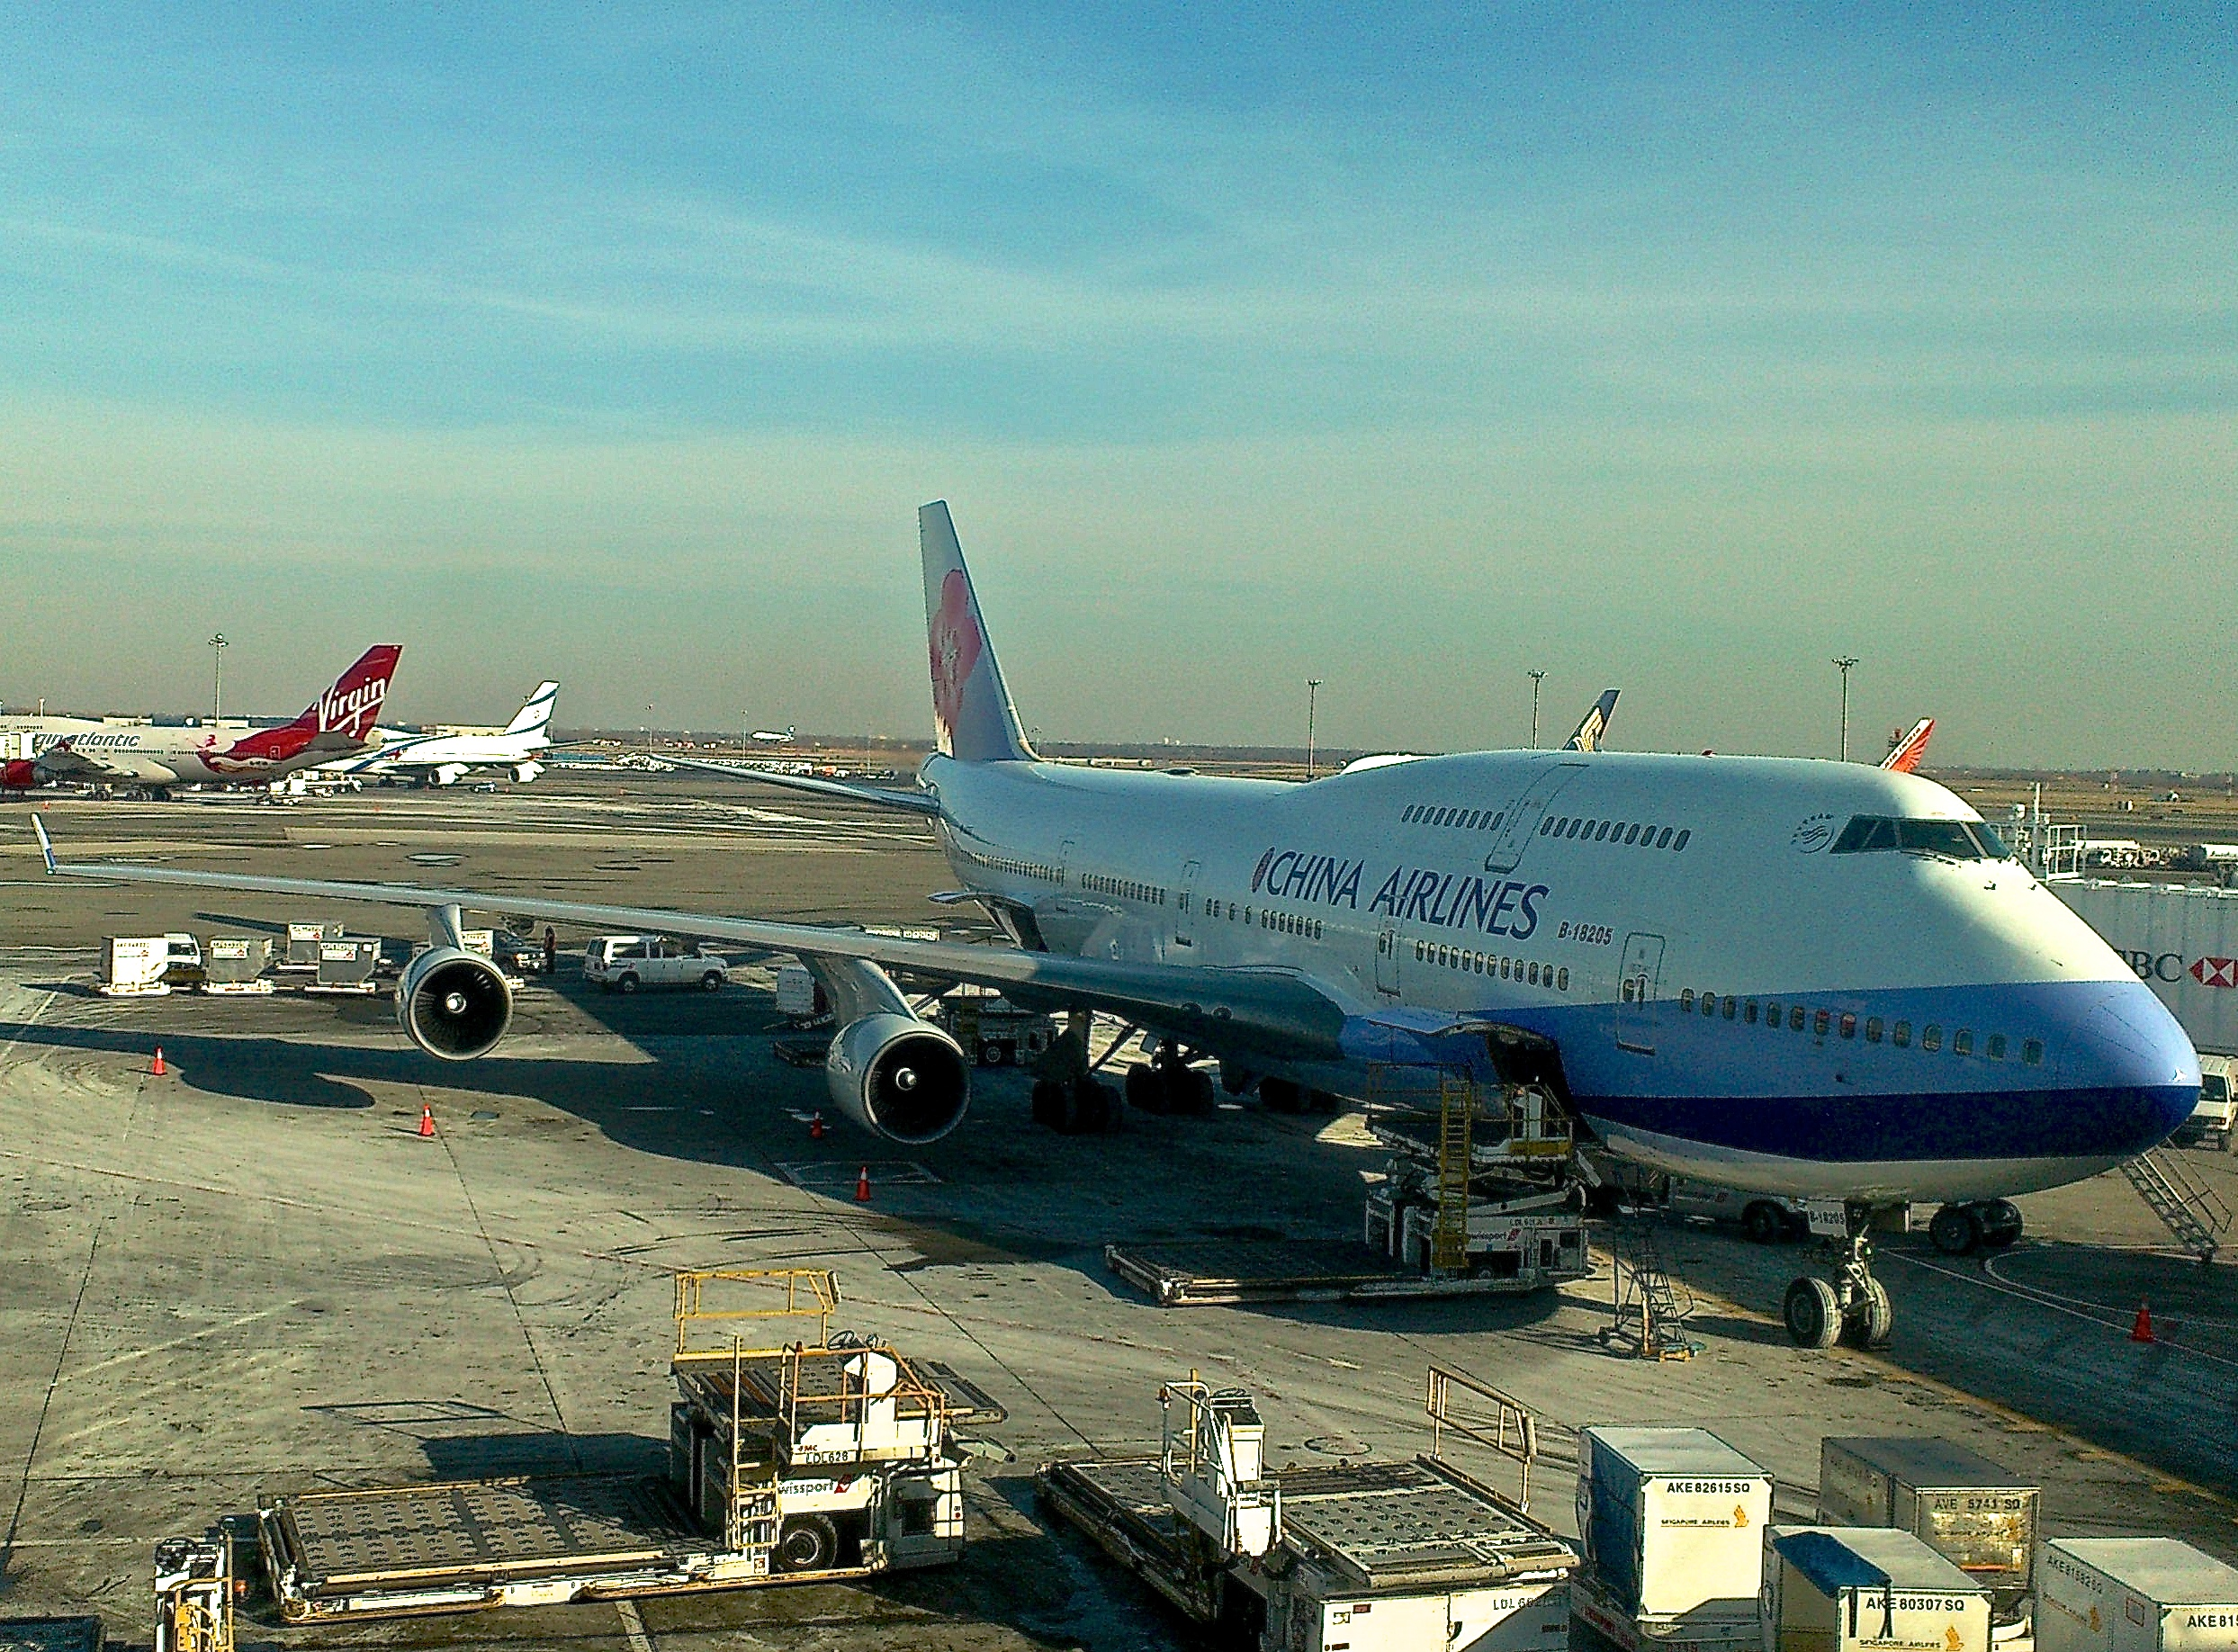 File:China Airlines Boeing 747-400 In New York City.JPG ...